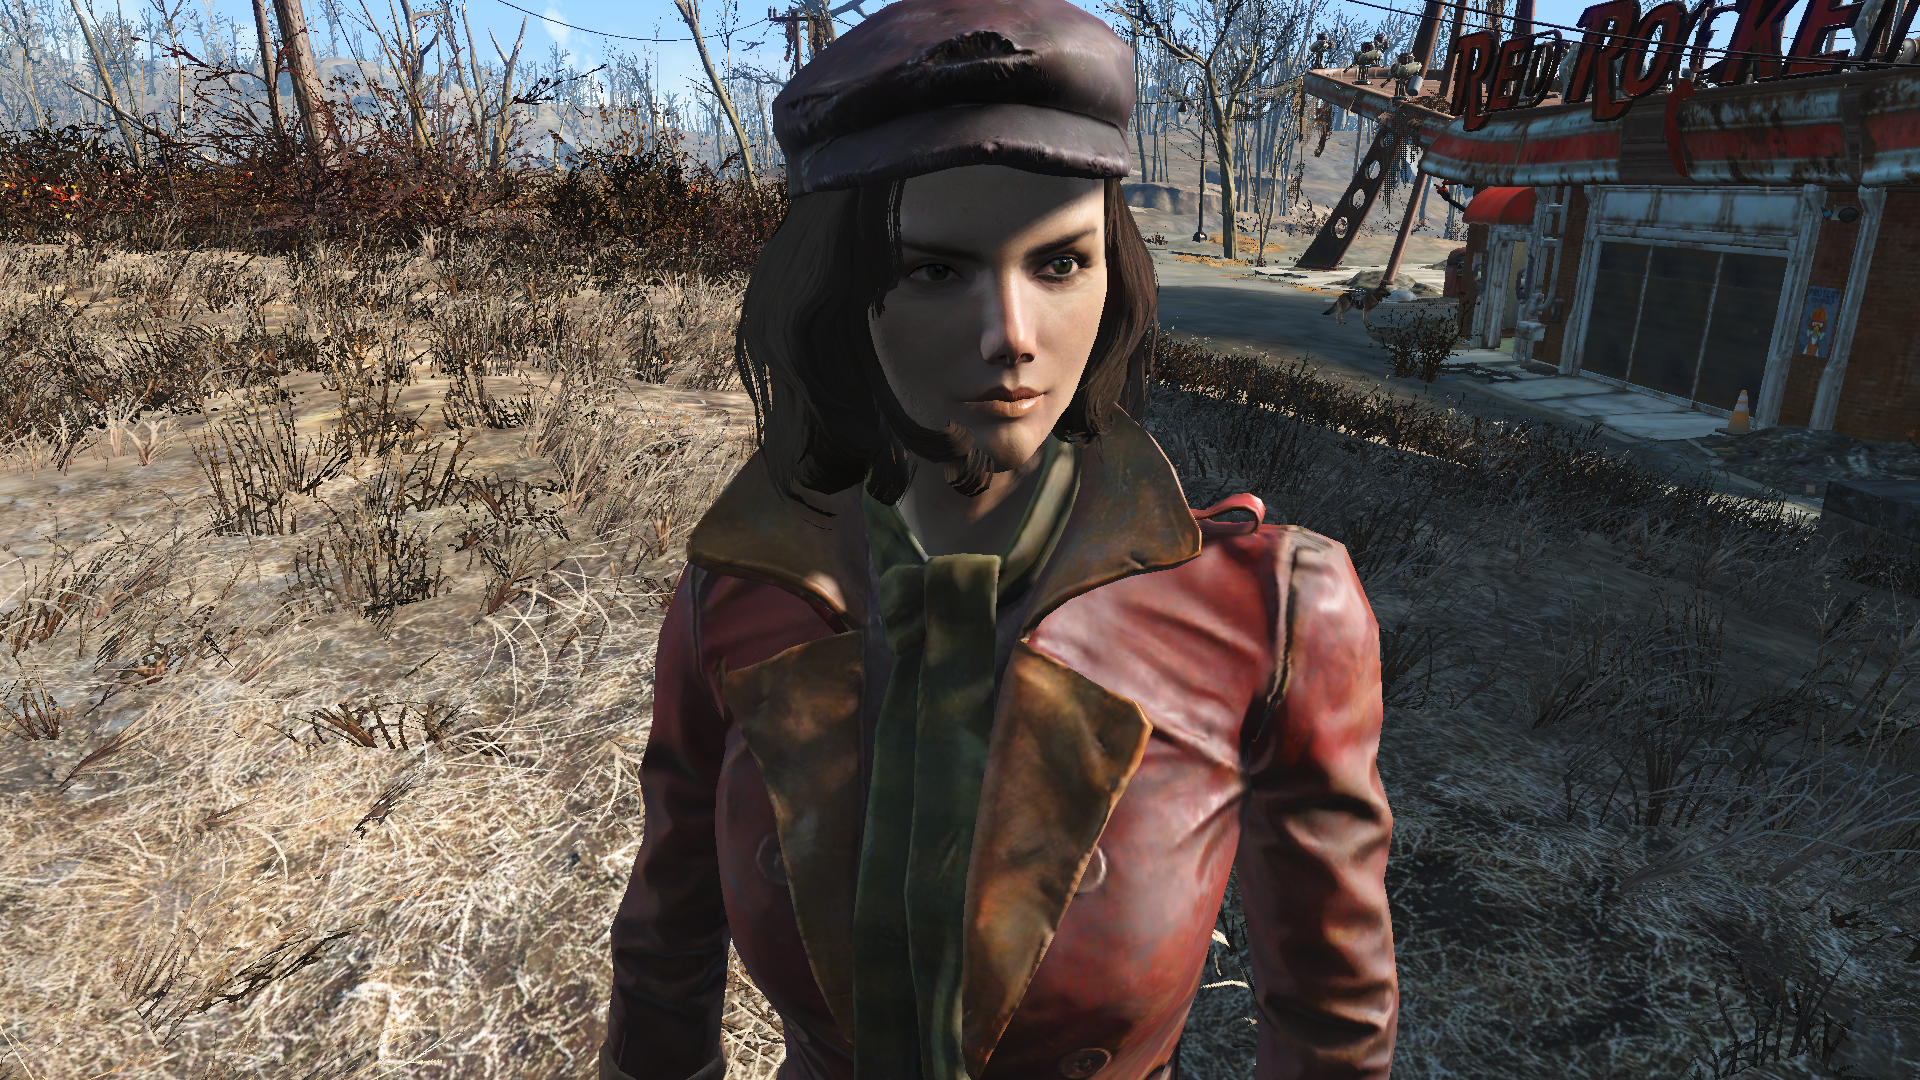 Piper LooksMenu preset is up at Fallout 4 Nexus - Mods and